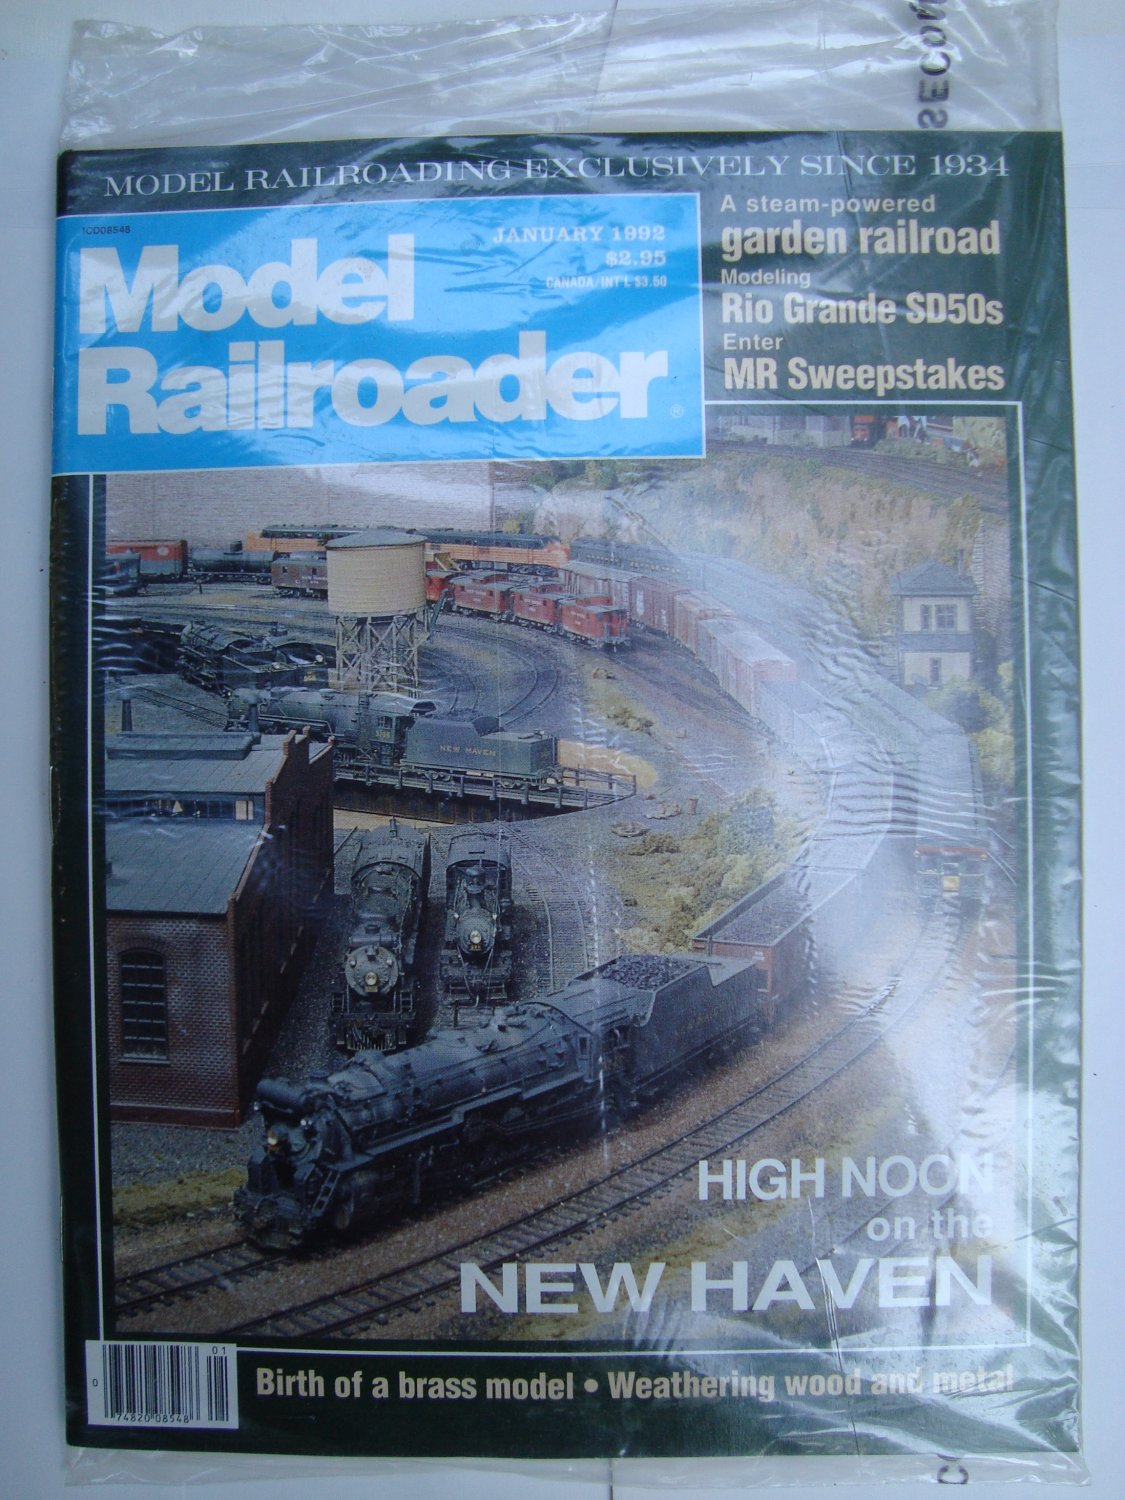 MODEL RAILROADER January 1992 Vol 59 No 1 High Noon on the New Haven Rio Grande SD50